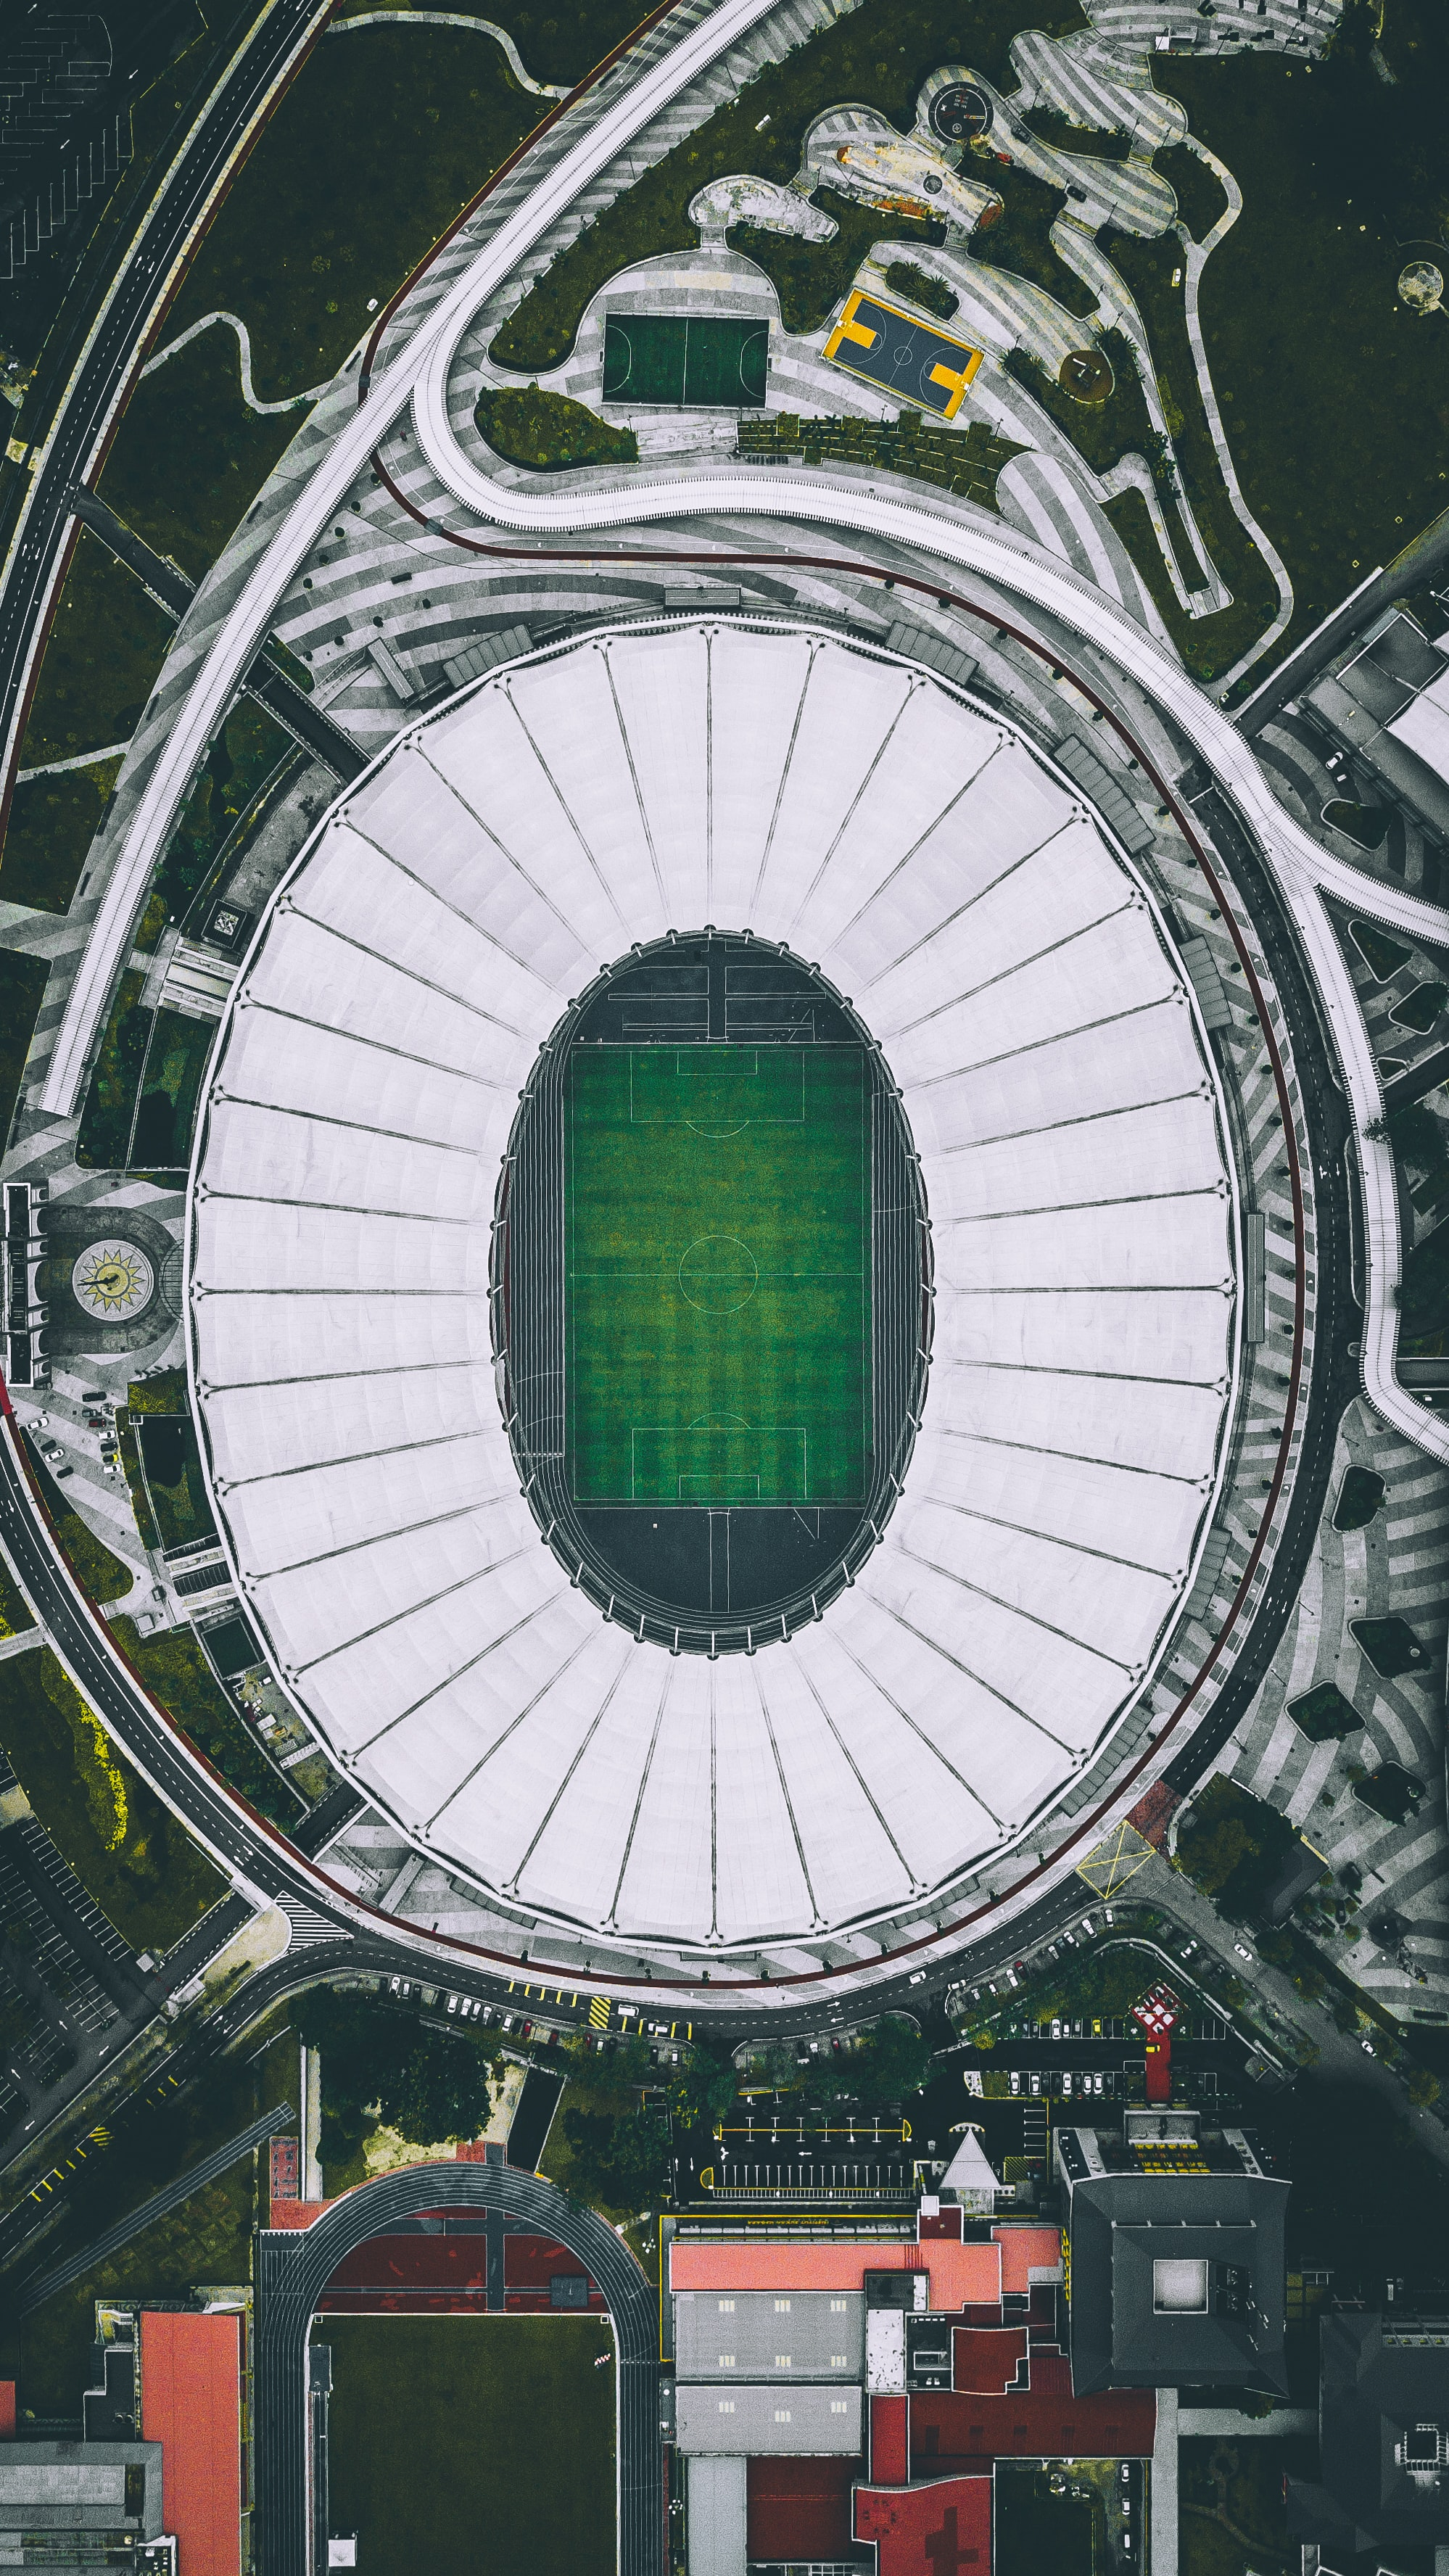 aerial photo of football field